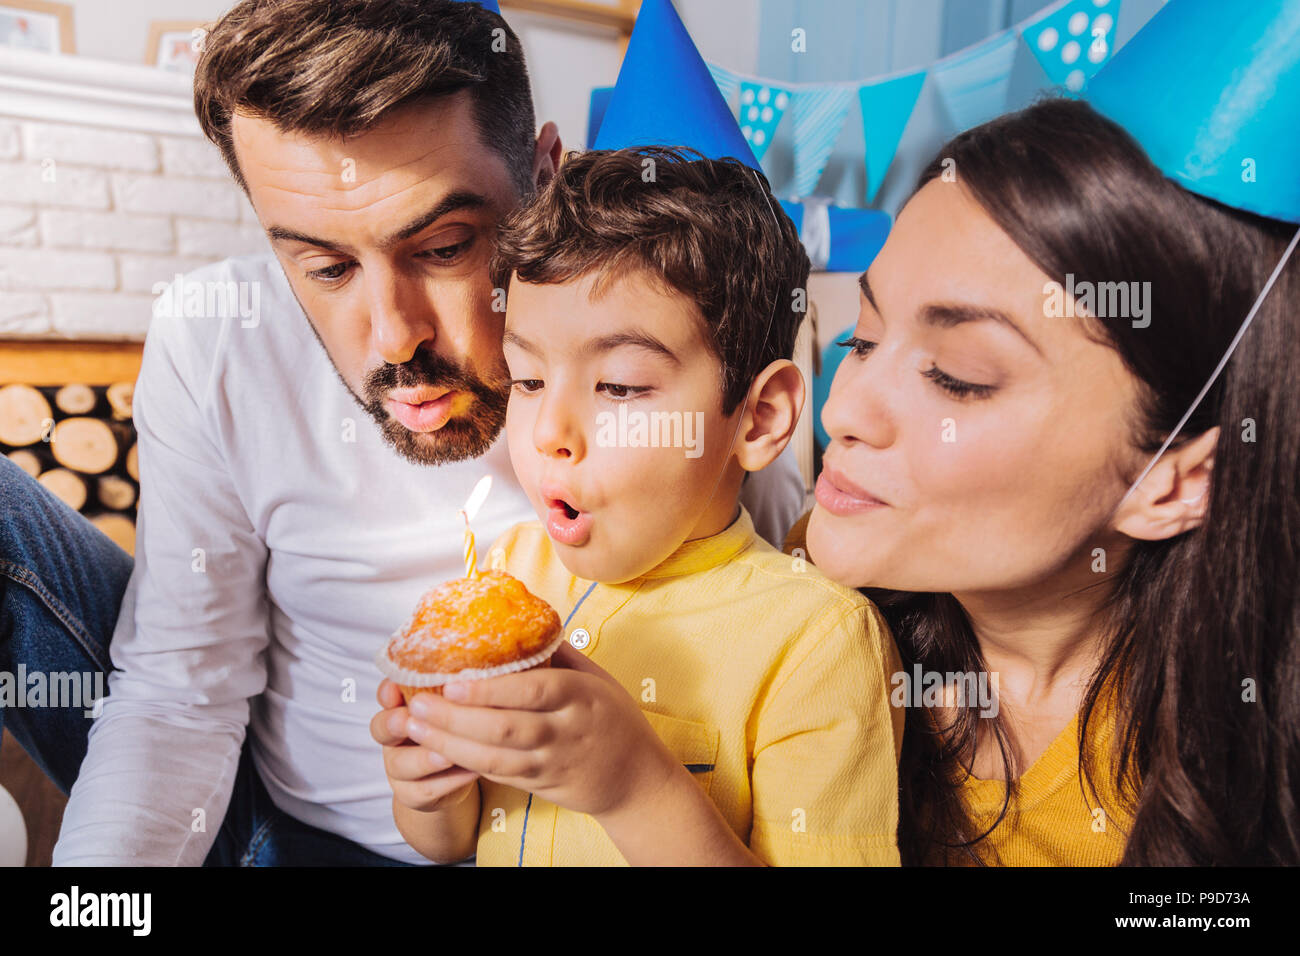 Charmante brunette female looking at plaqués cake Photo Stock